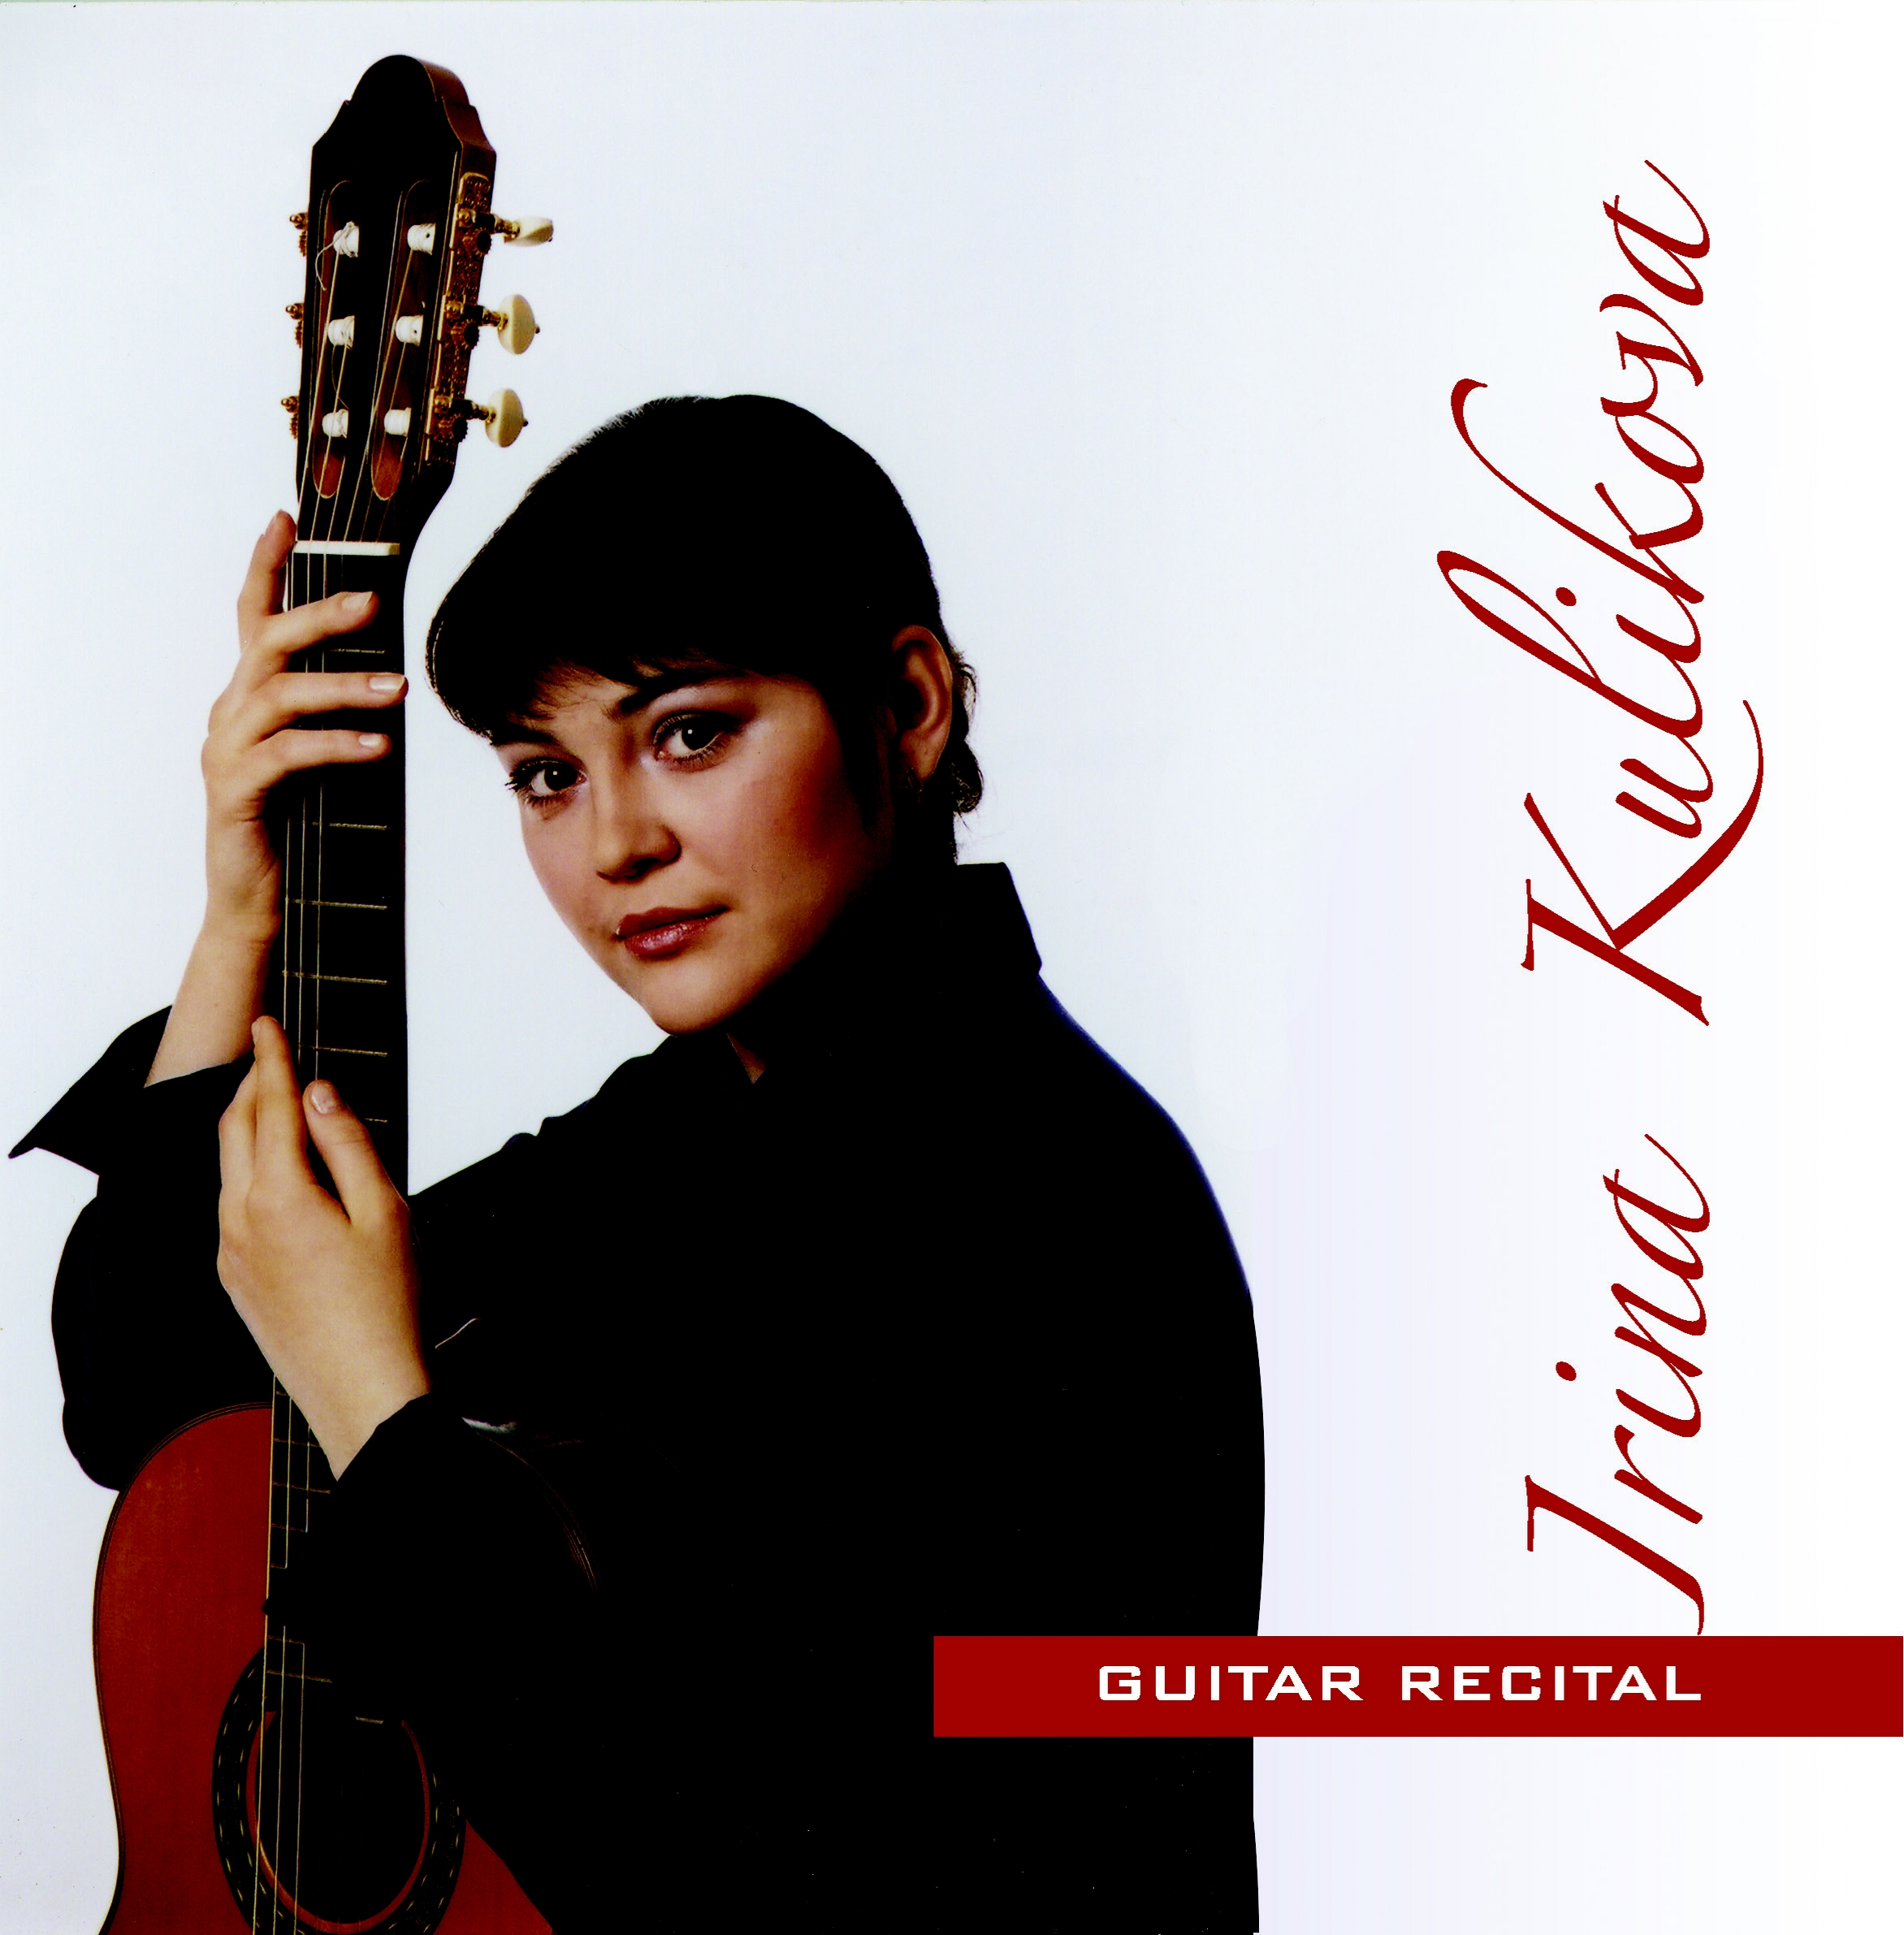 Guitar Recital 2005 - album cover